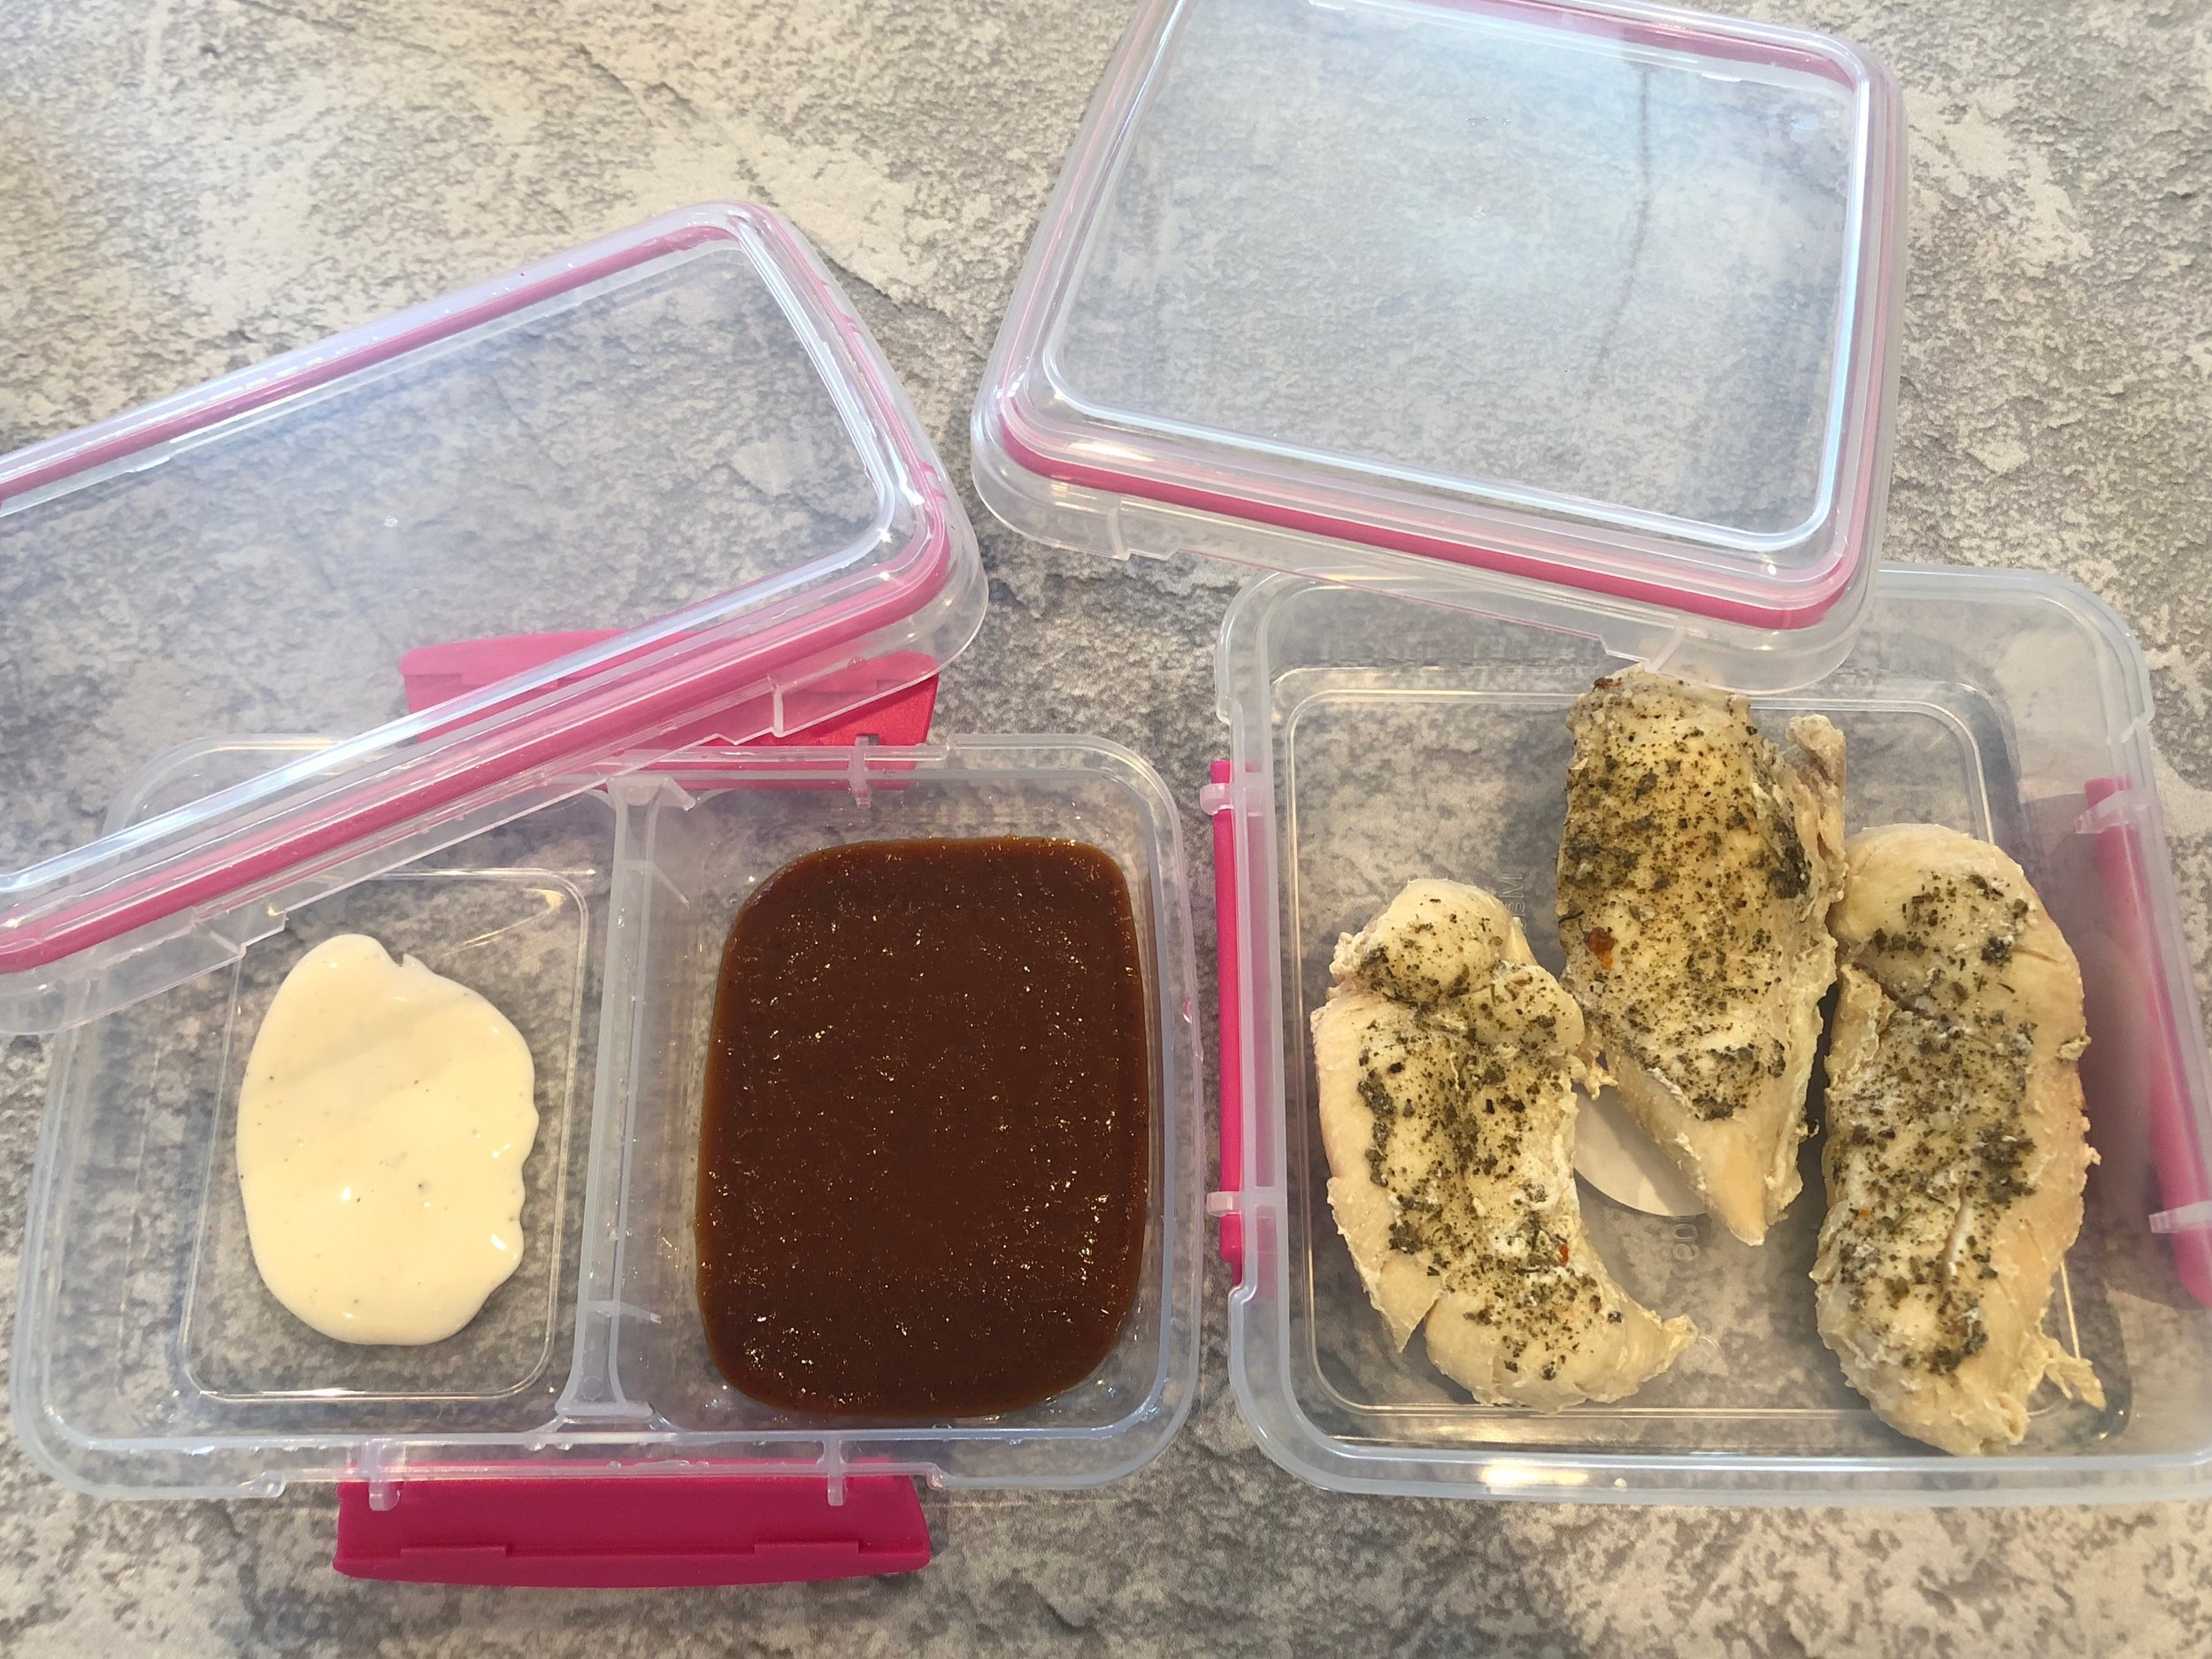 School lunches chicken tenders keto and low carb